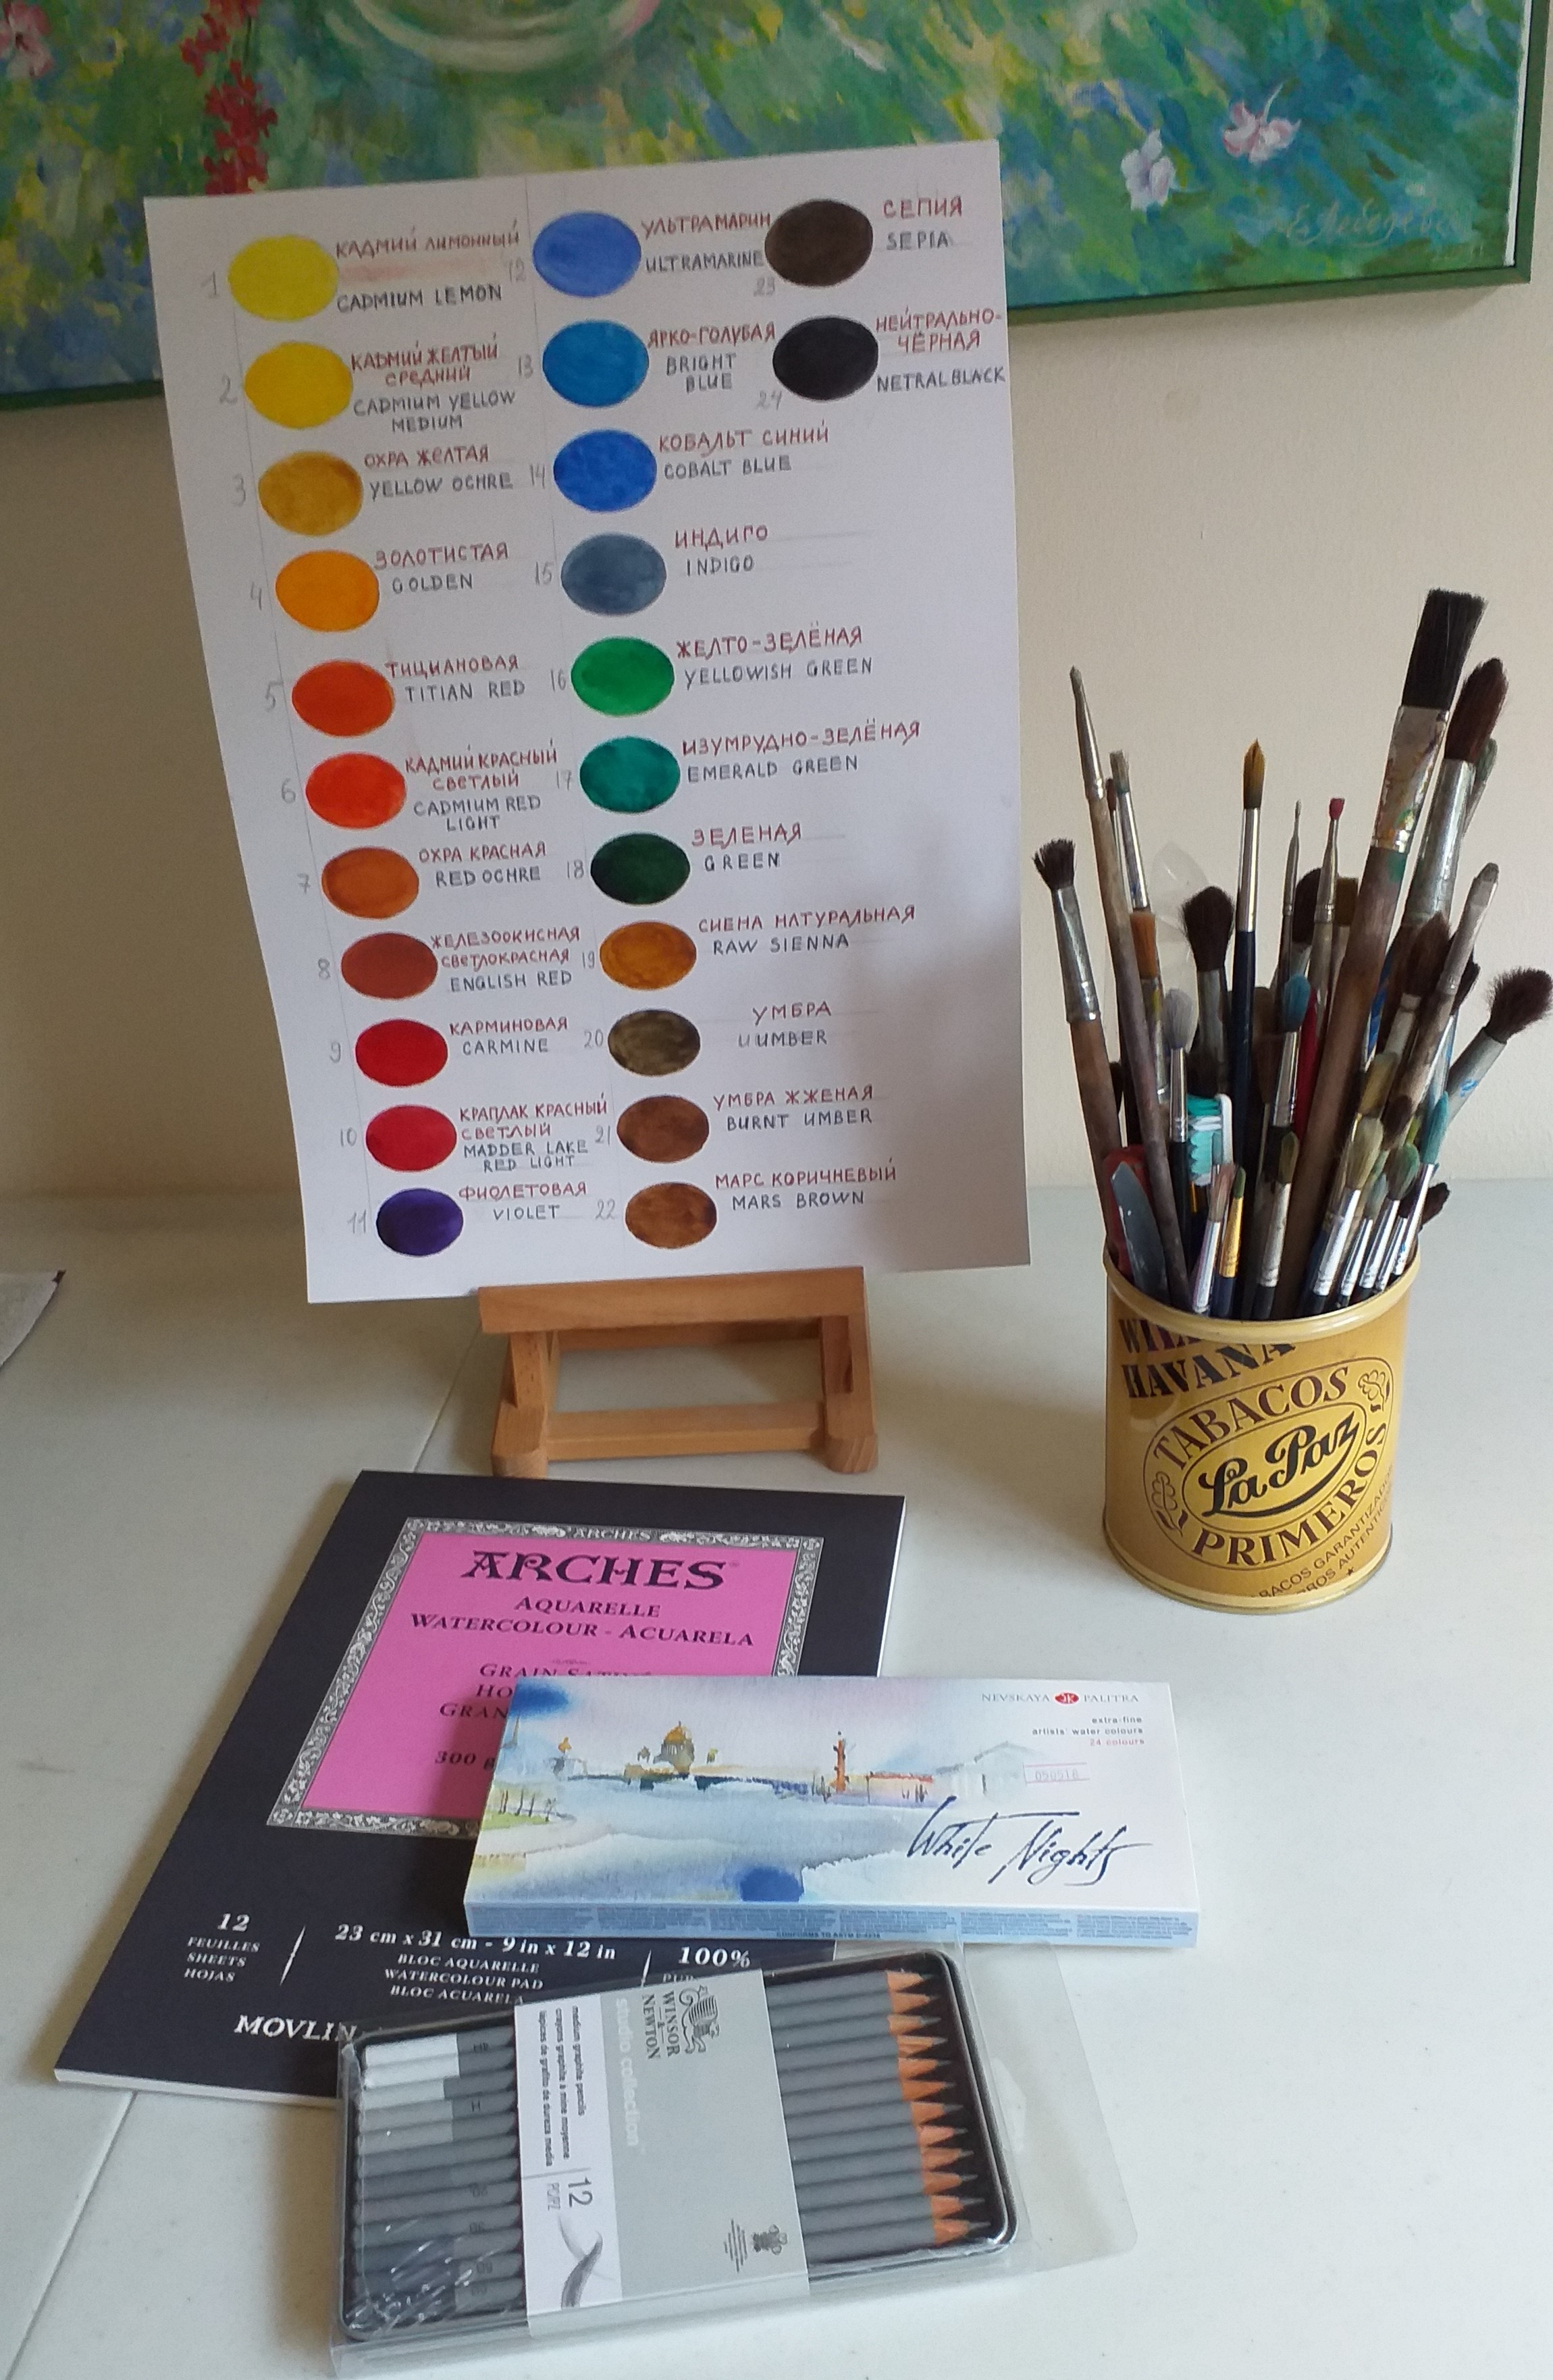 The new Watercolour course for beginners and amateur artists will start on 16th of September at Magic Wool Studio in Worcestershire